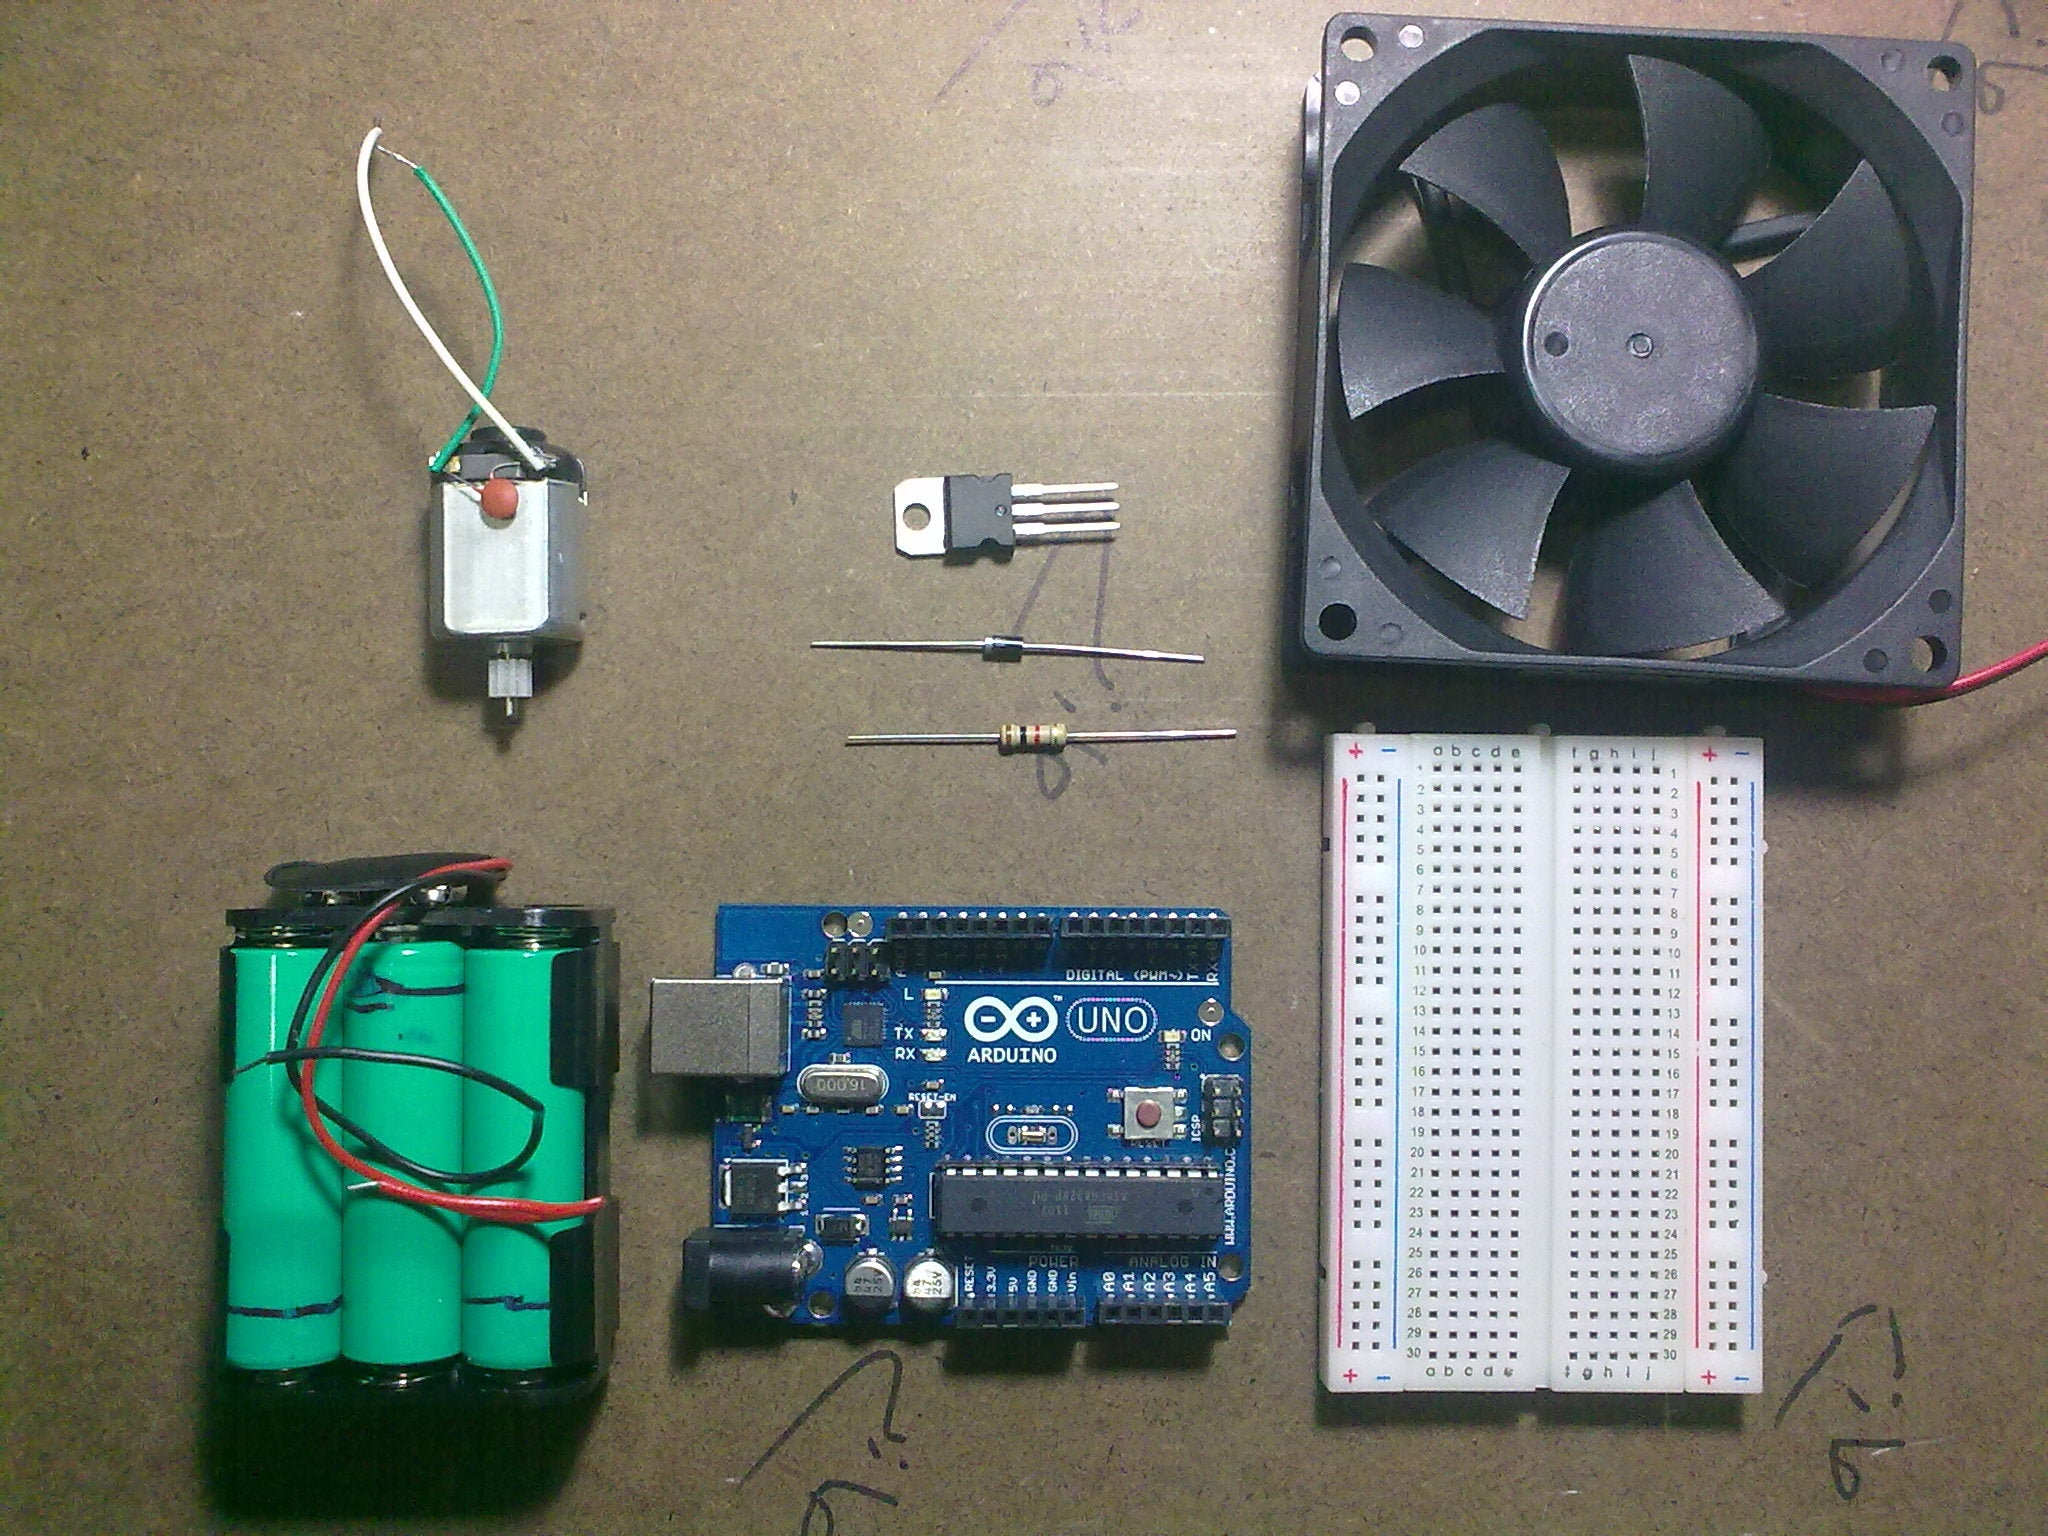 Use Arduino With Tip120 Transistor To Control Motors And High Power Mosfet Current Regulator Limiter Schematic Pcb Alternative Link 5 Devices